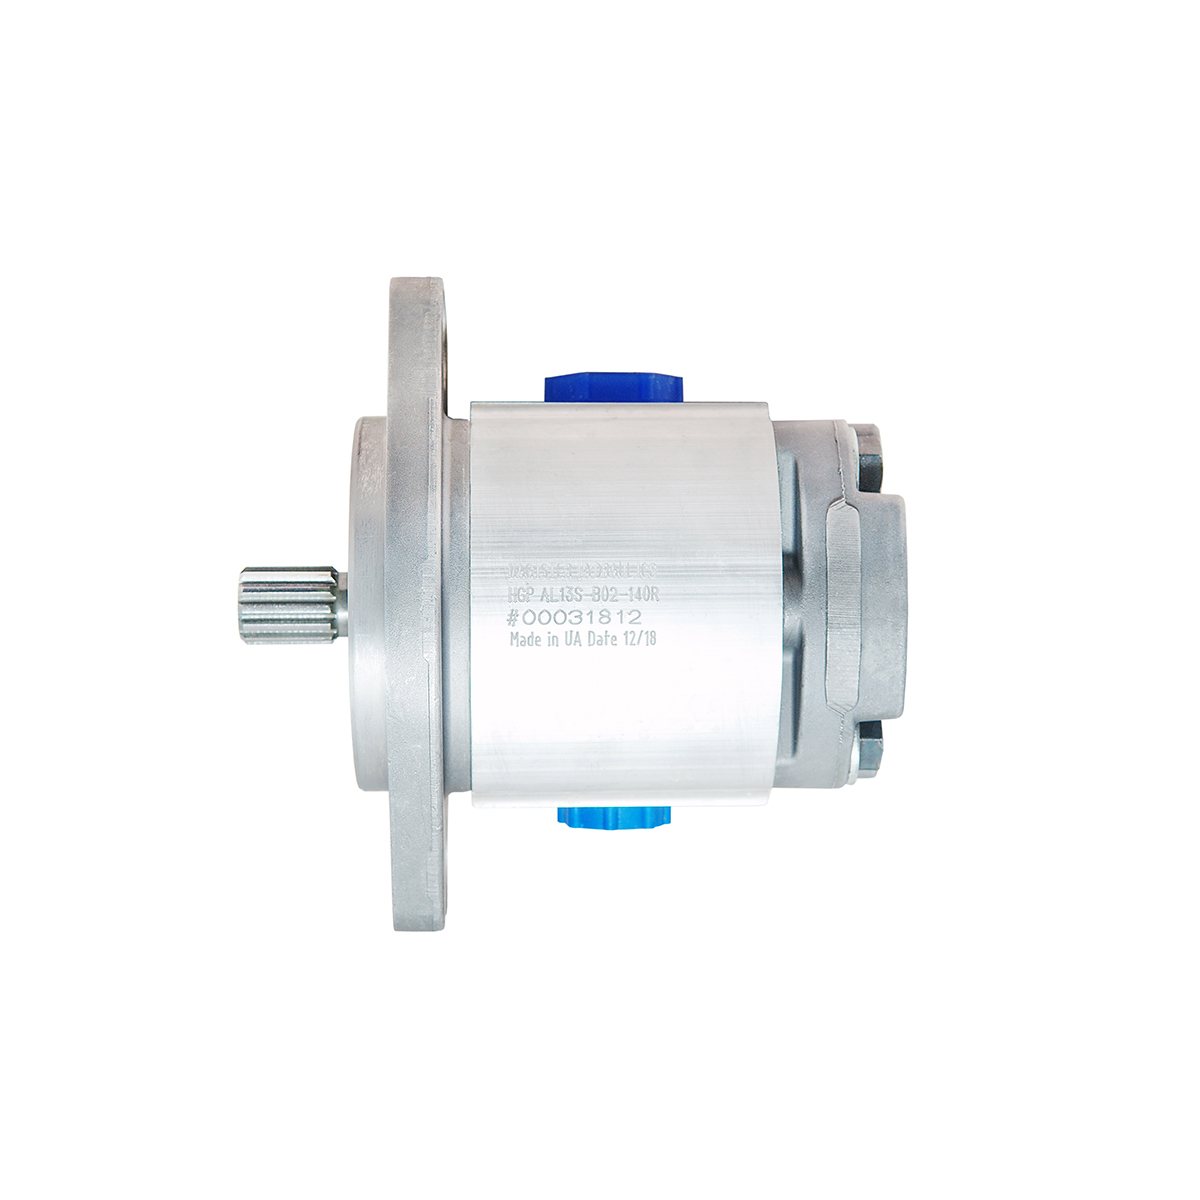 1.83 CID hydraulic gear pump, 13 tooth spline shaft clockwise gear pump | Magister Hydraulics